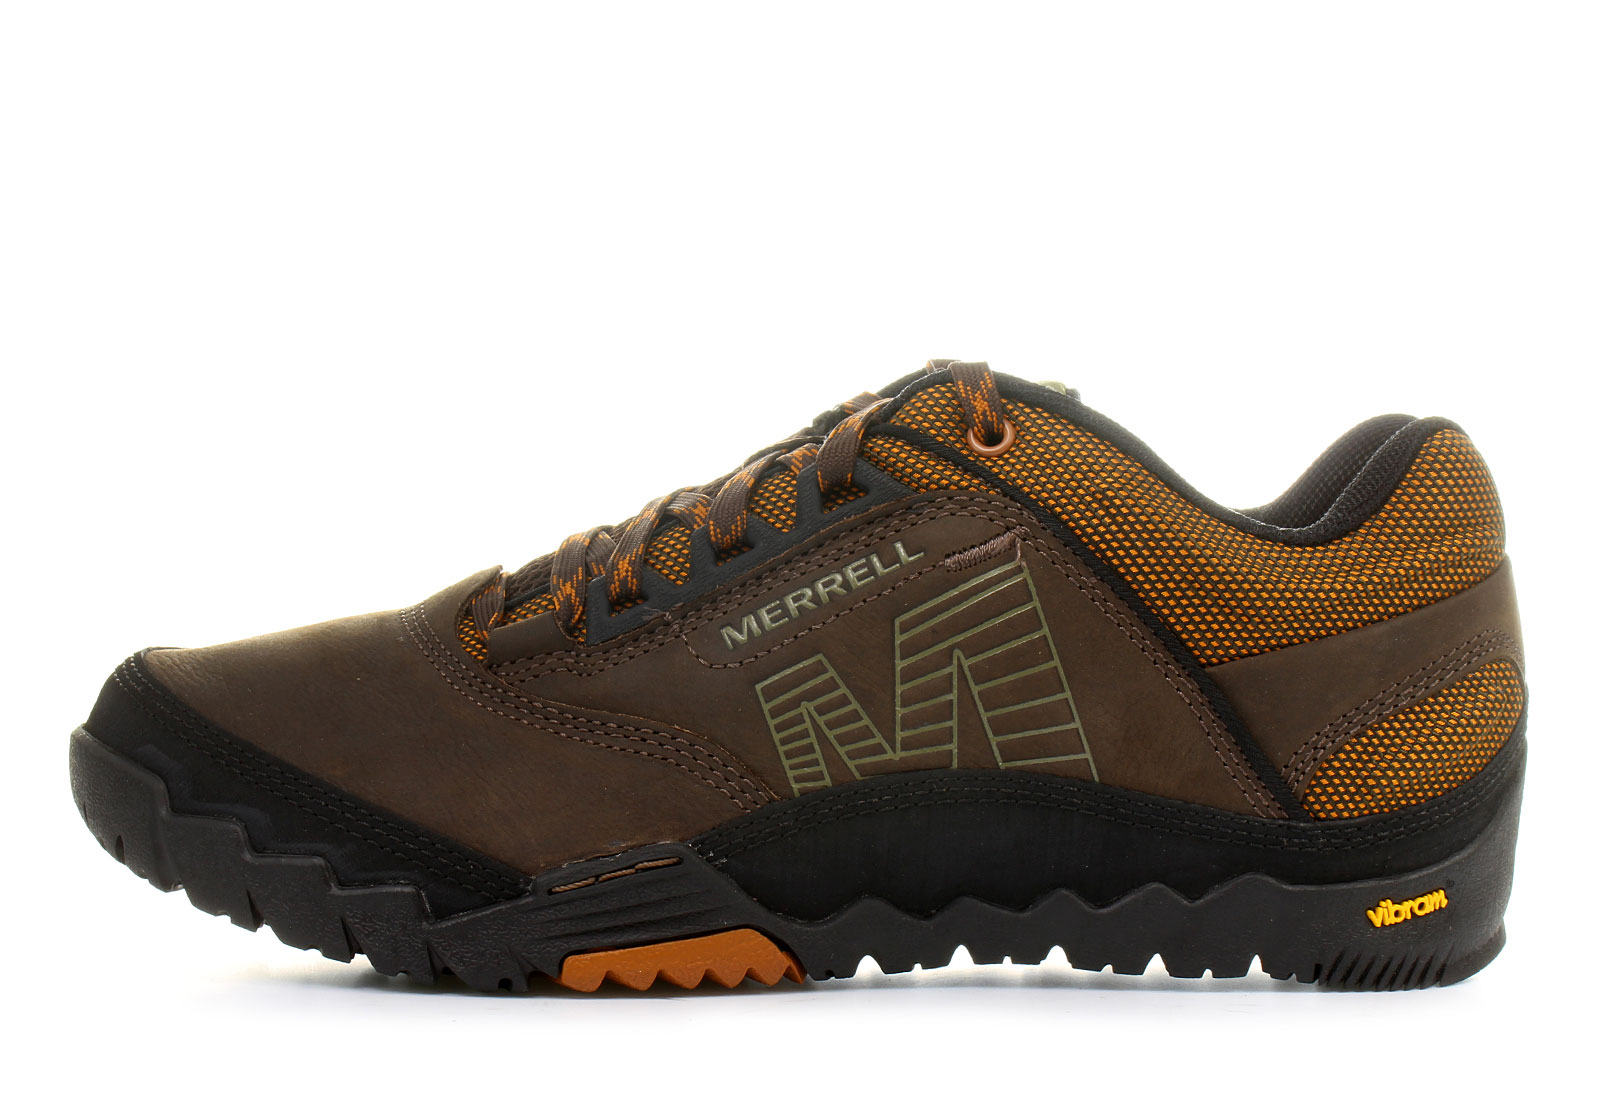 Free shipping both ways on Merrell outdoor shoes, clothing, and more!